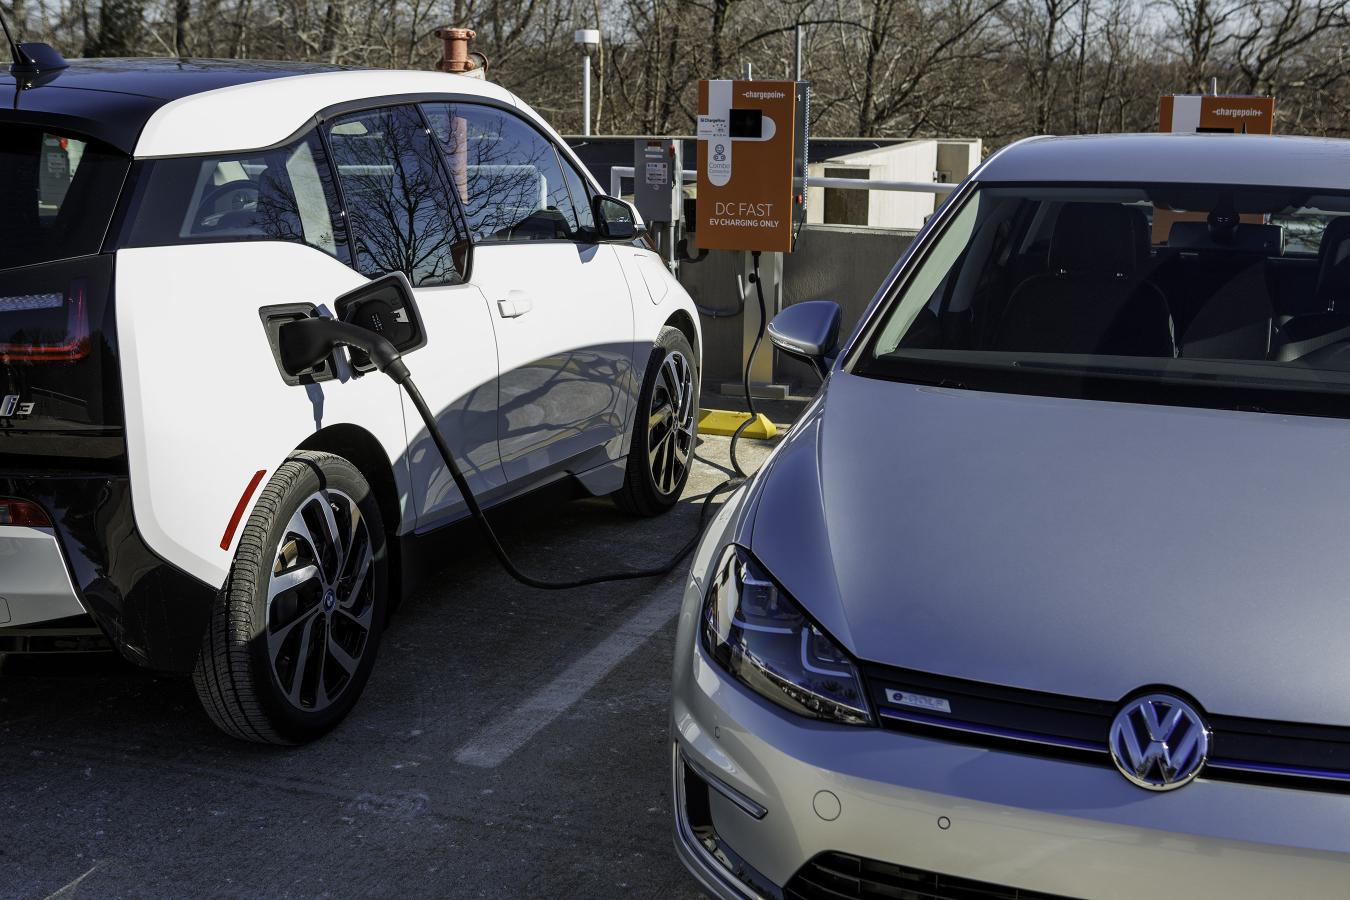 vw's electrify america submits electric-car charging plan to epa